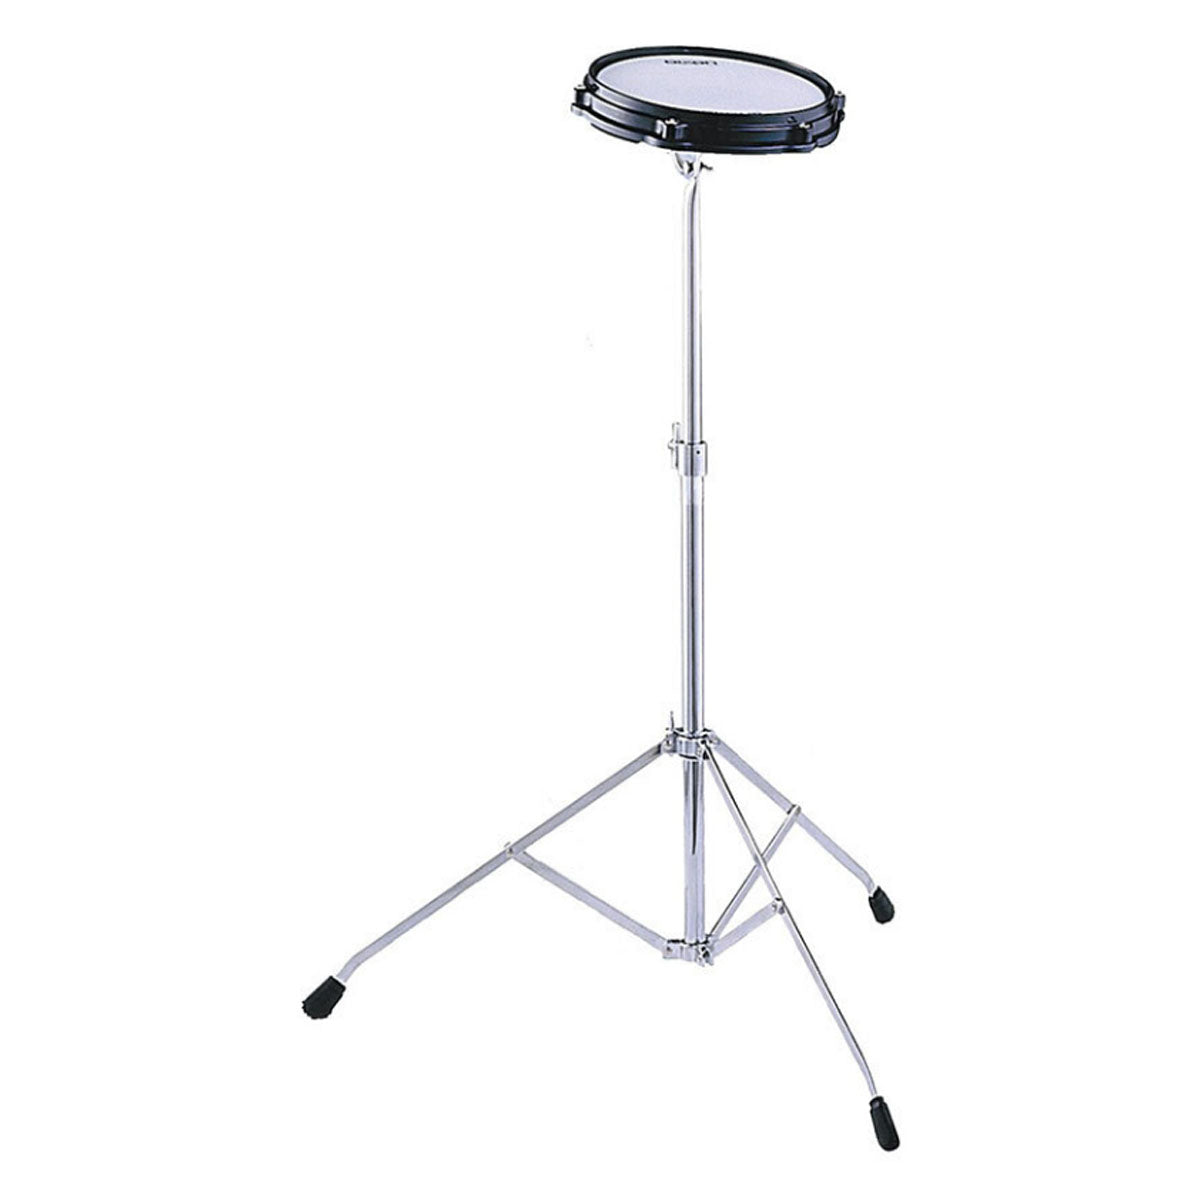 Dixon 8inch Tunable Practice Pad Kit w/ Stand - PDP1511